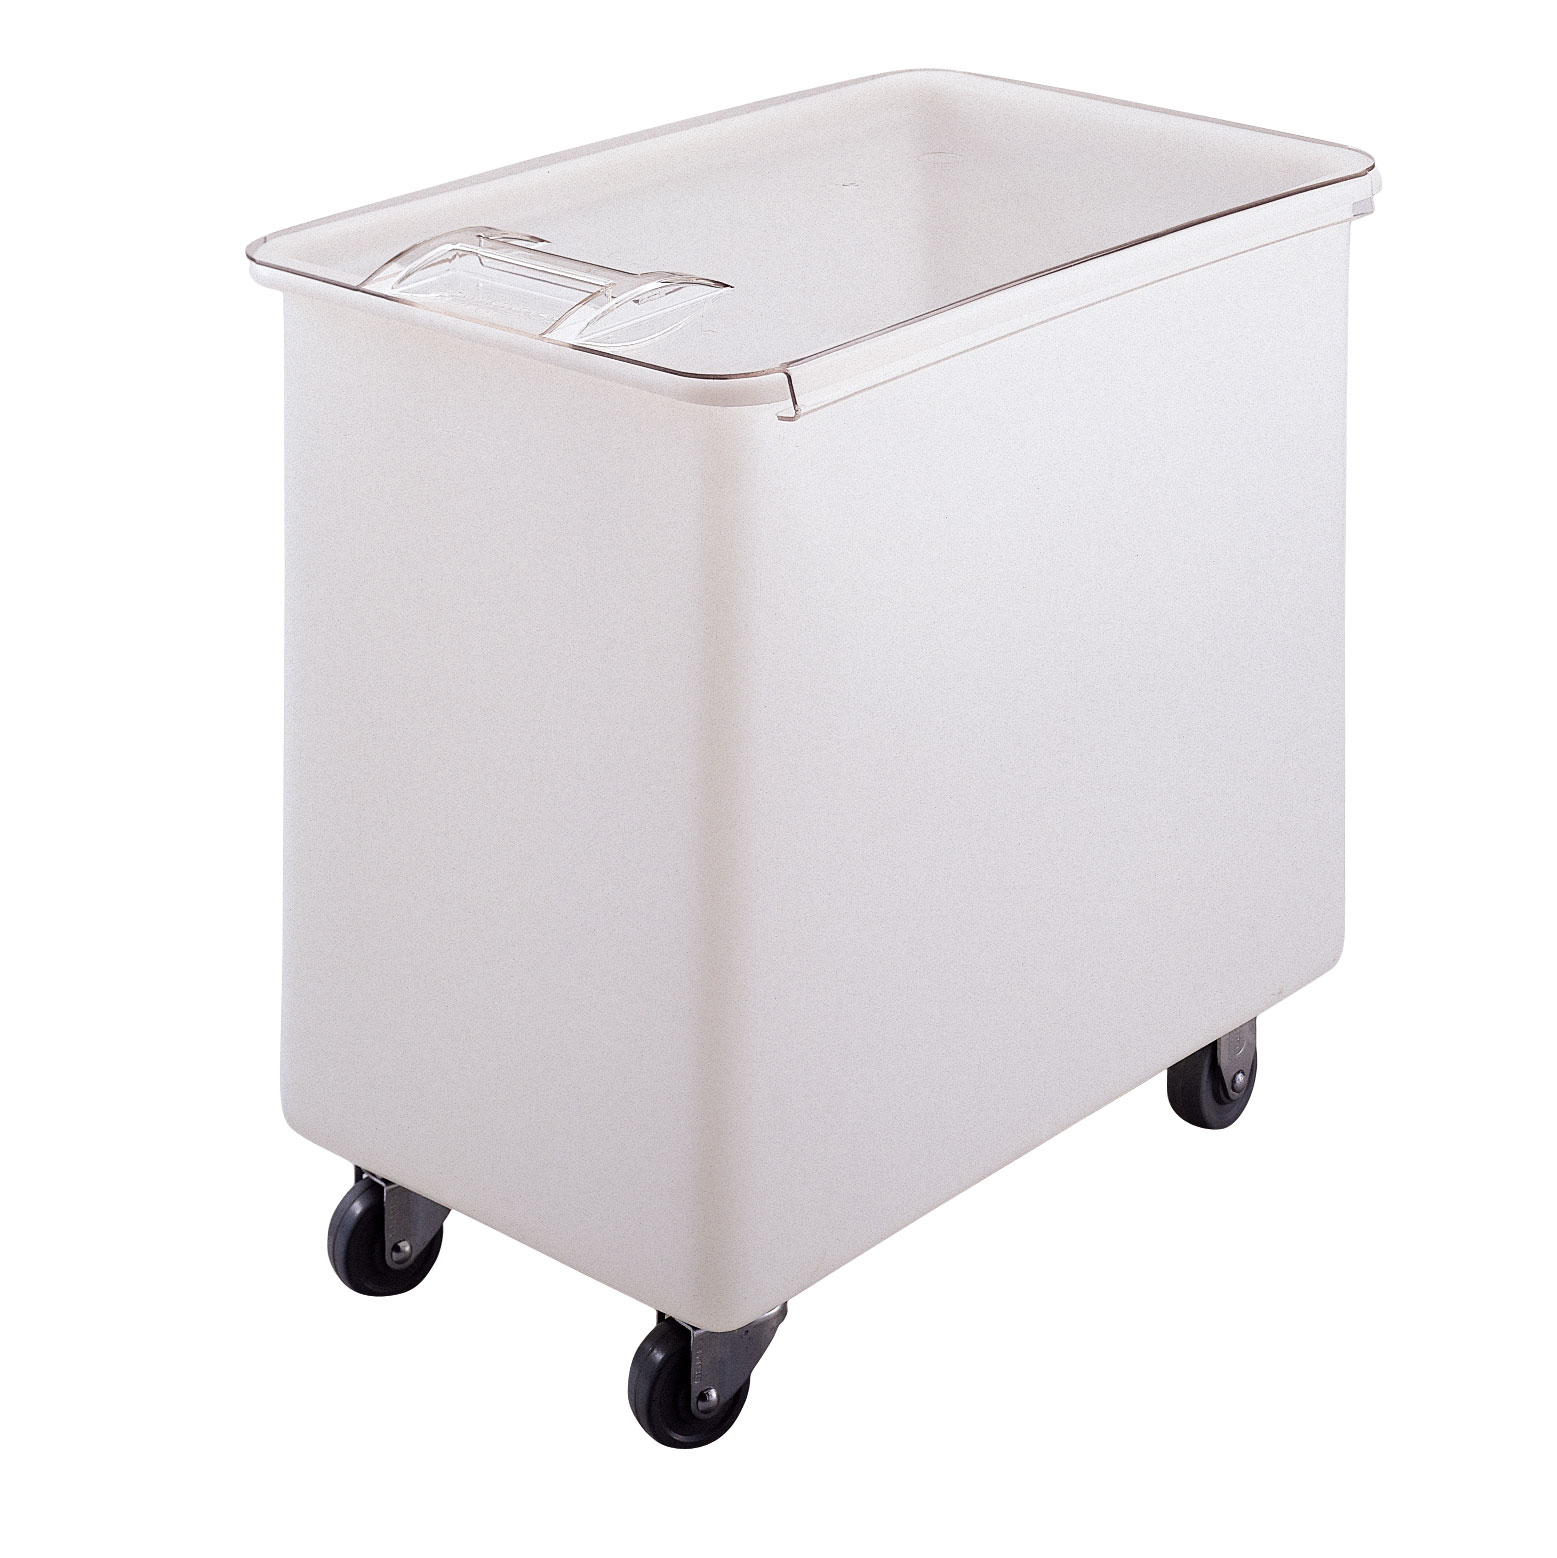 Cambro IB44148 food storage containers